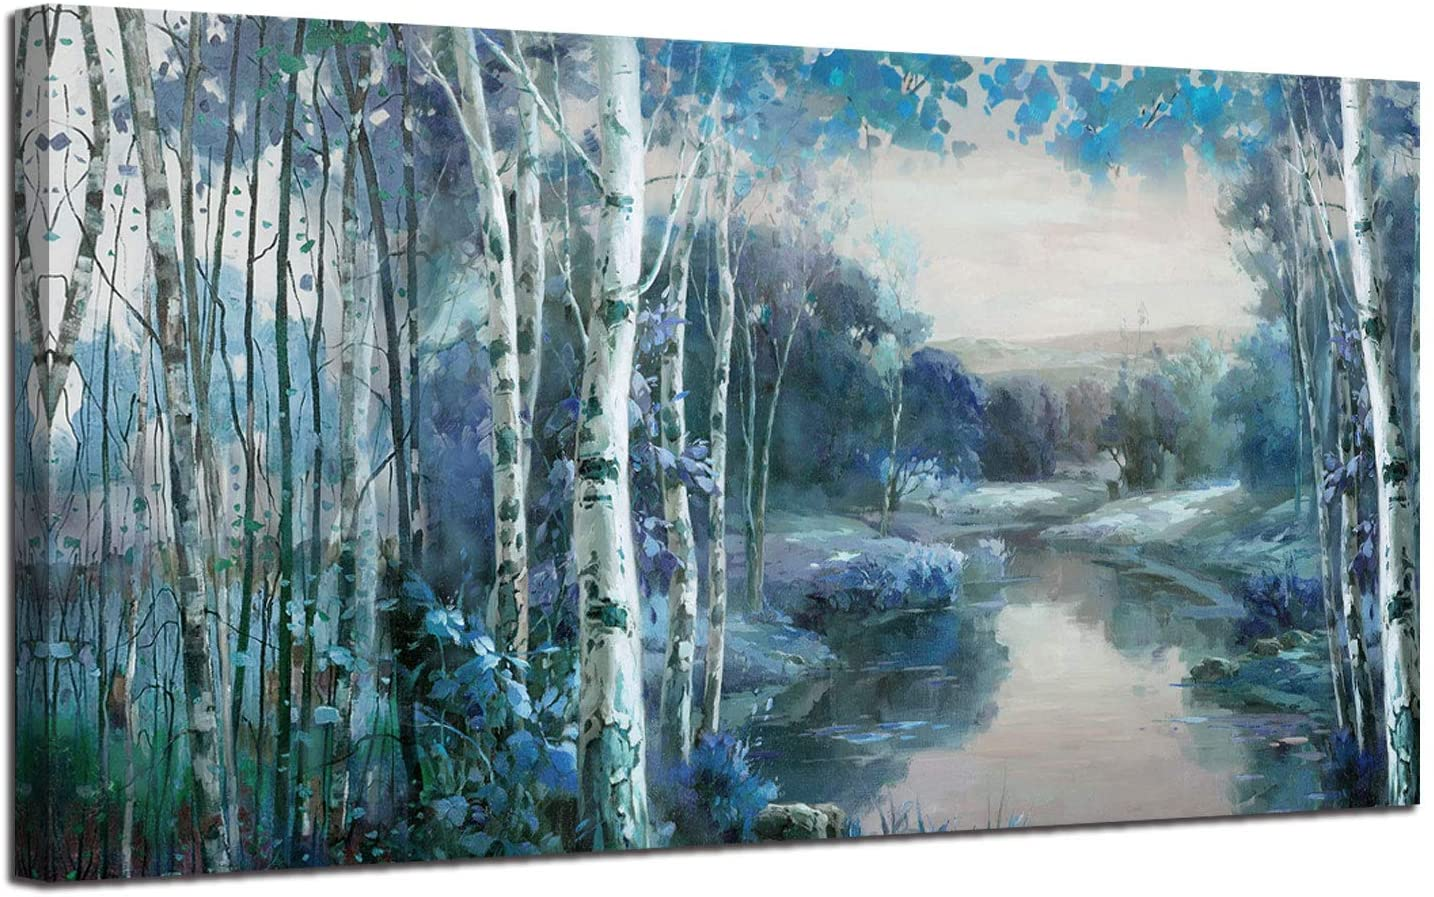 Amazon Com Canvas Wall Art Tree Landscape Blue Painting Nature Forest Picture Teal Mountain River Artwork Rustic One Panel 40 X20 Large Artwork Prints Framed For Living Room Bedroom Home Office Wall Décor Everything